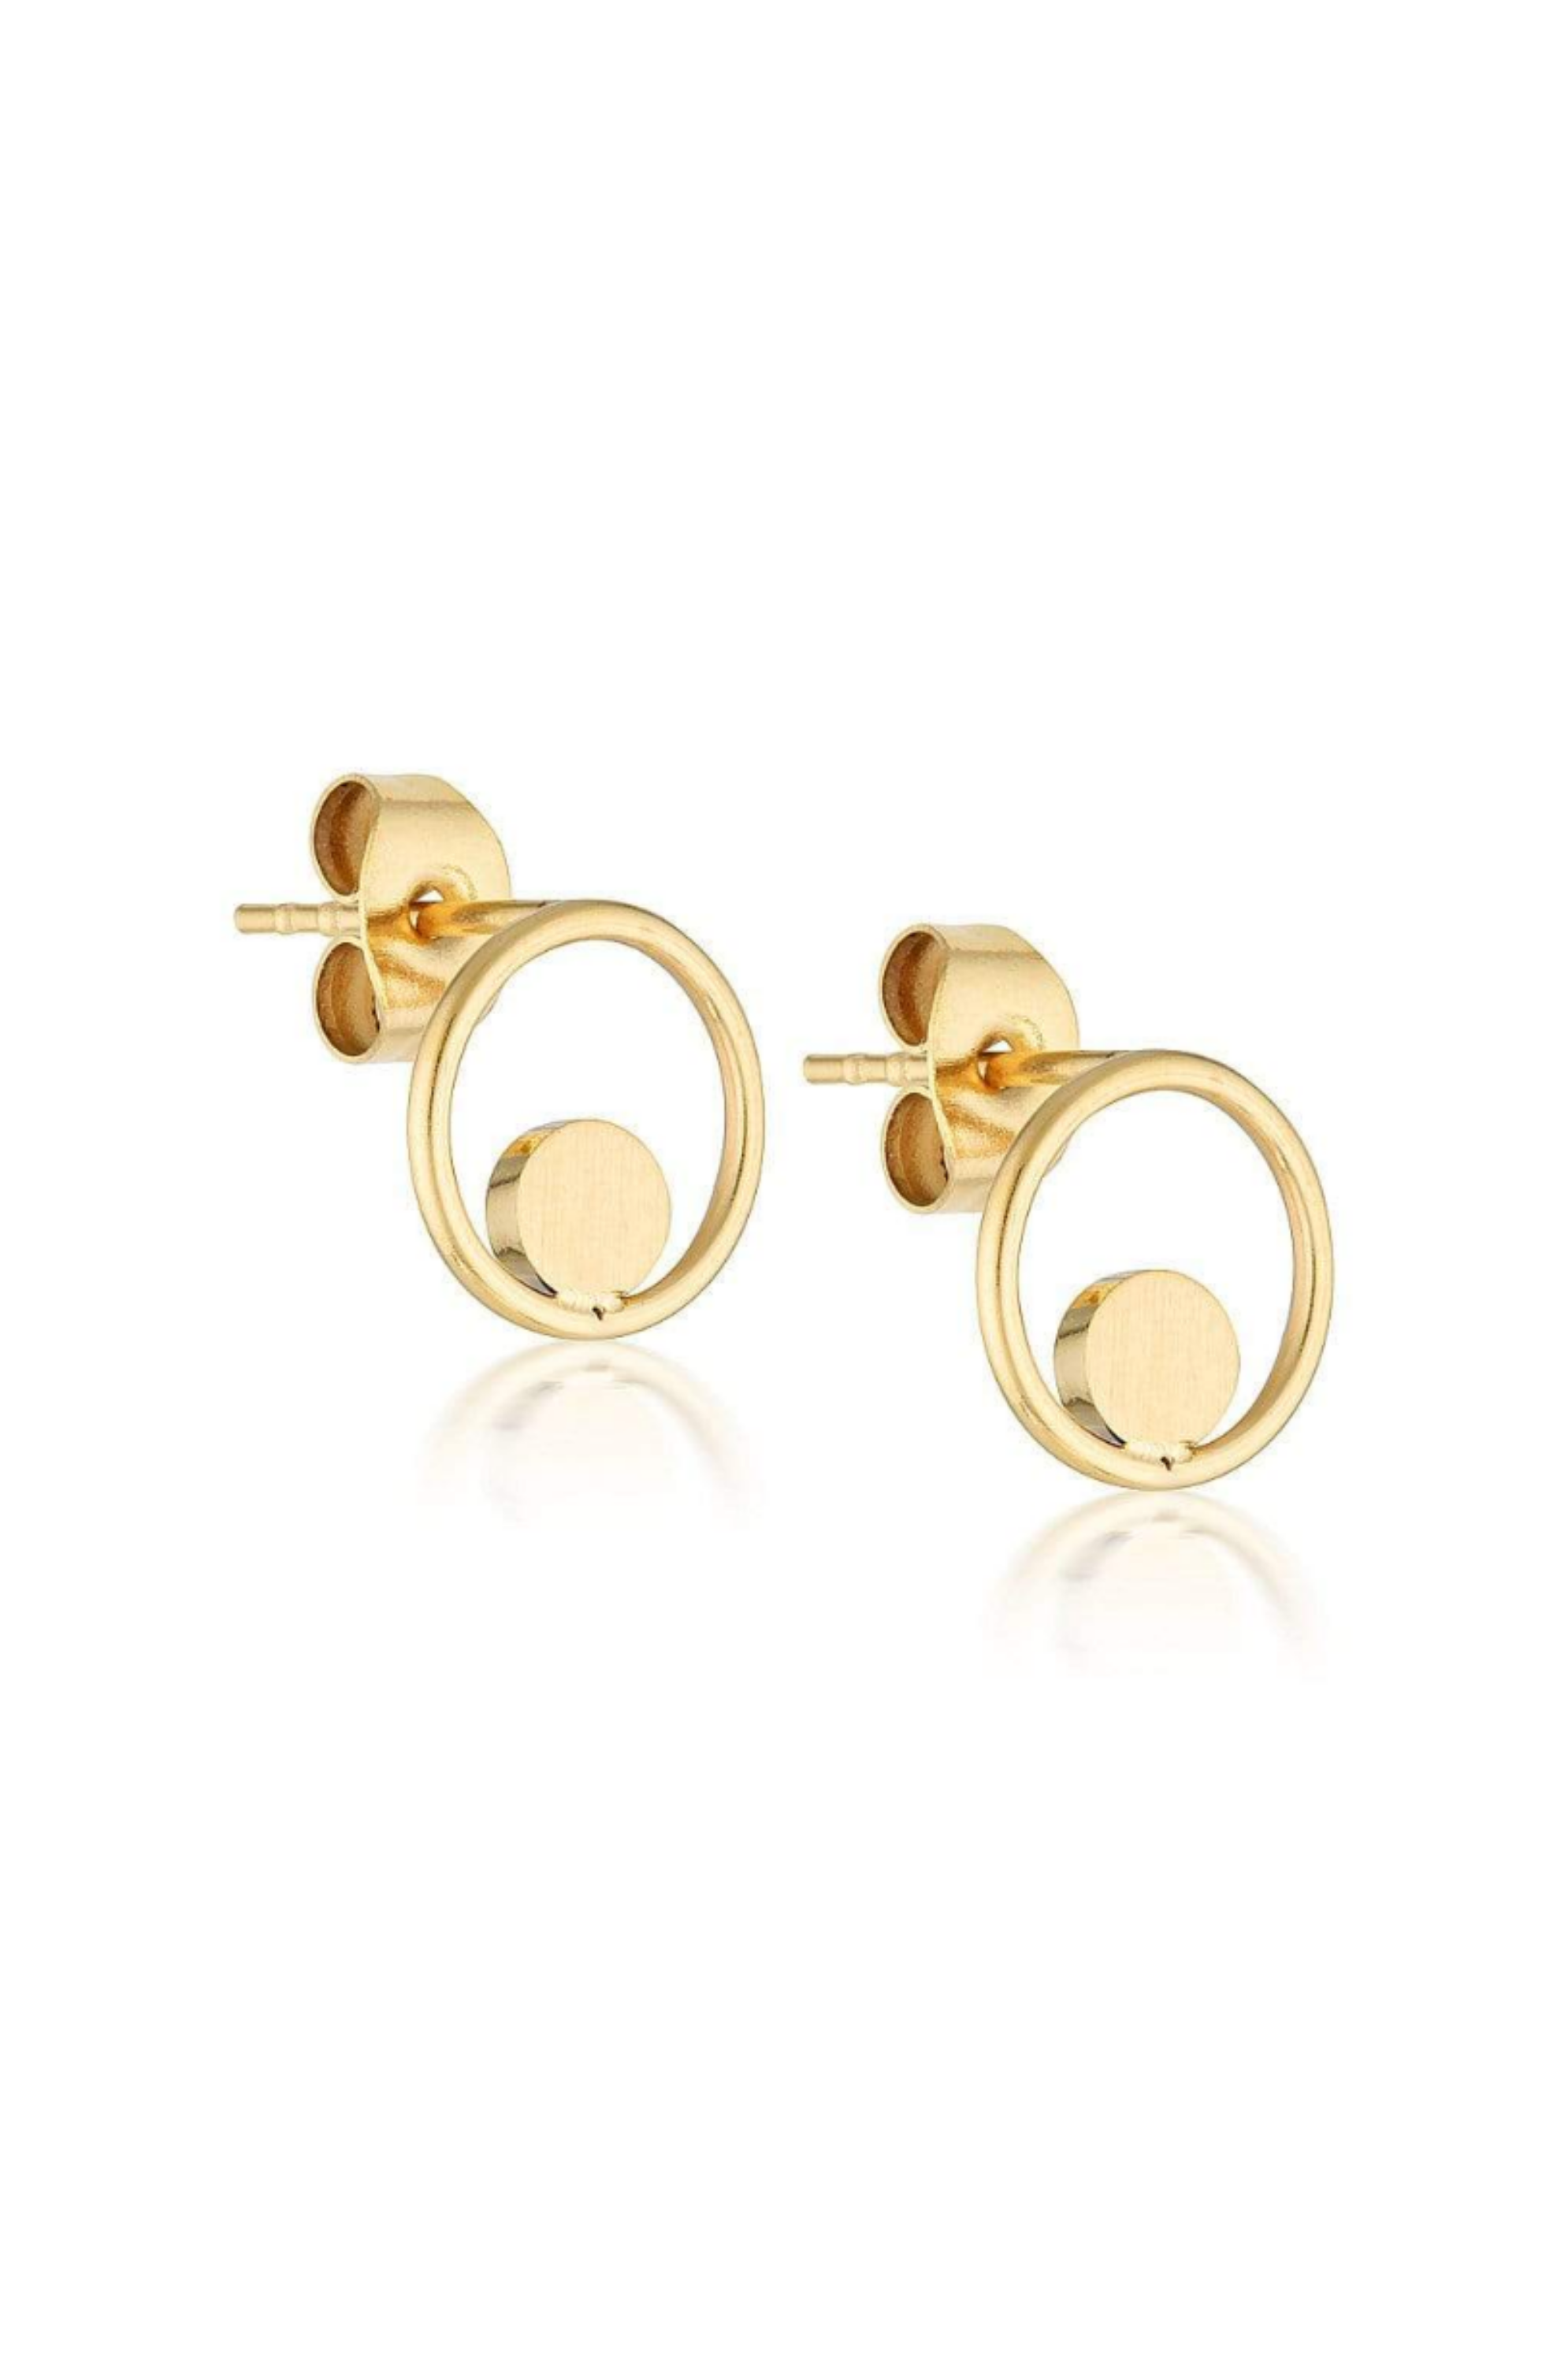 Aaina - Mini Circle of Life Hoops - Gold